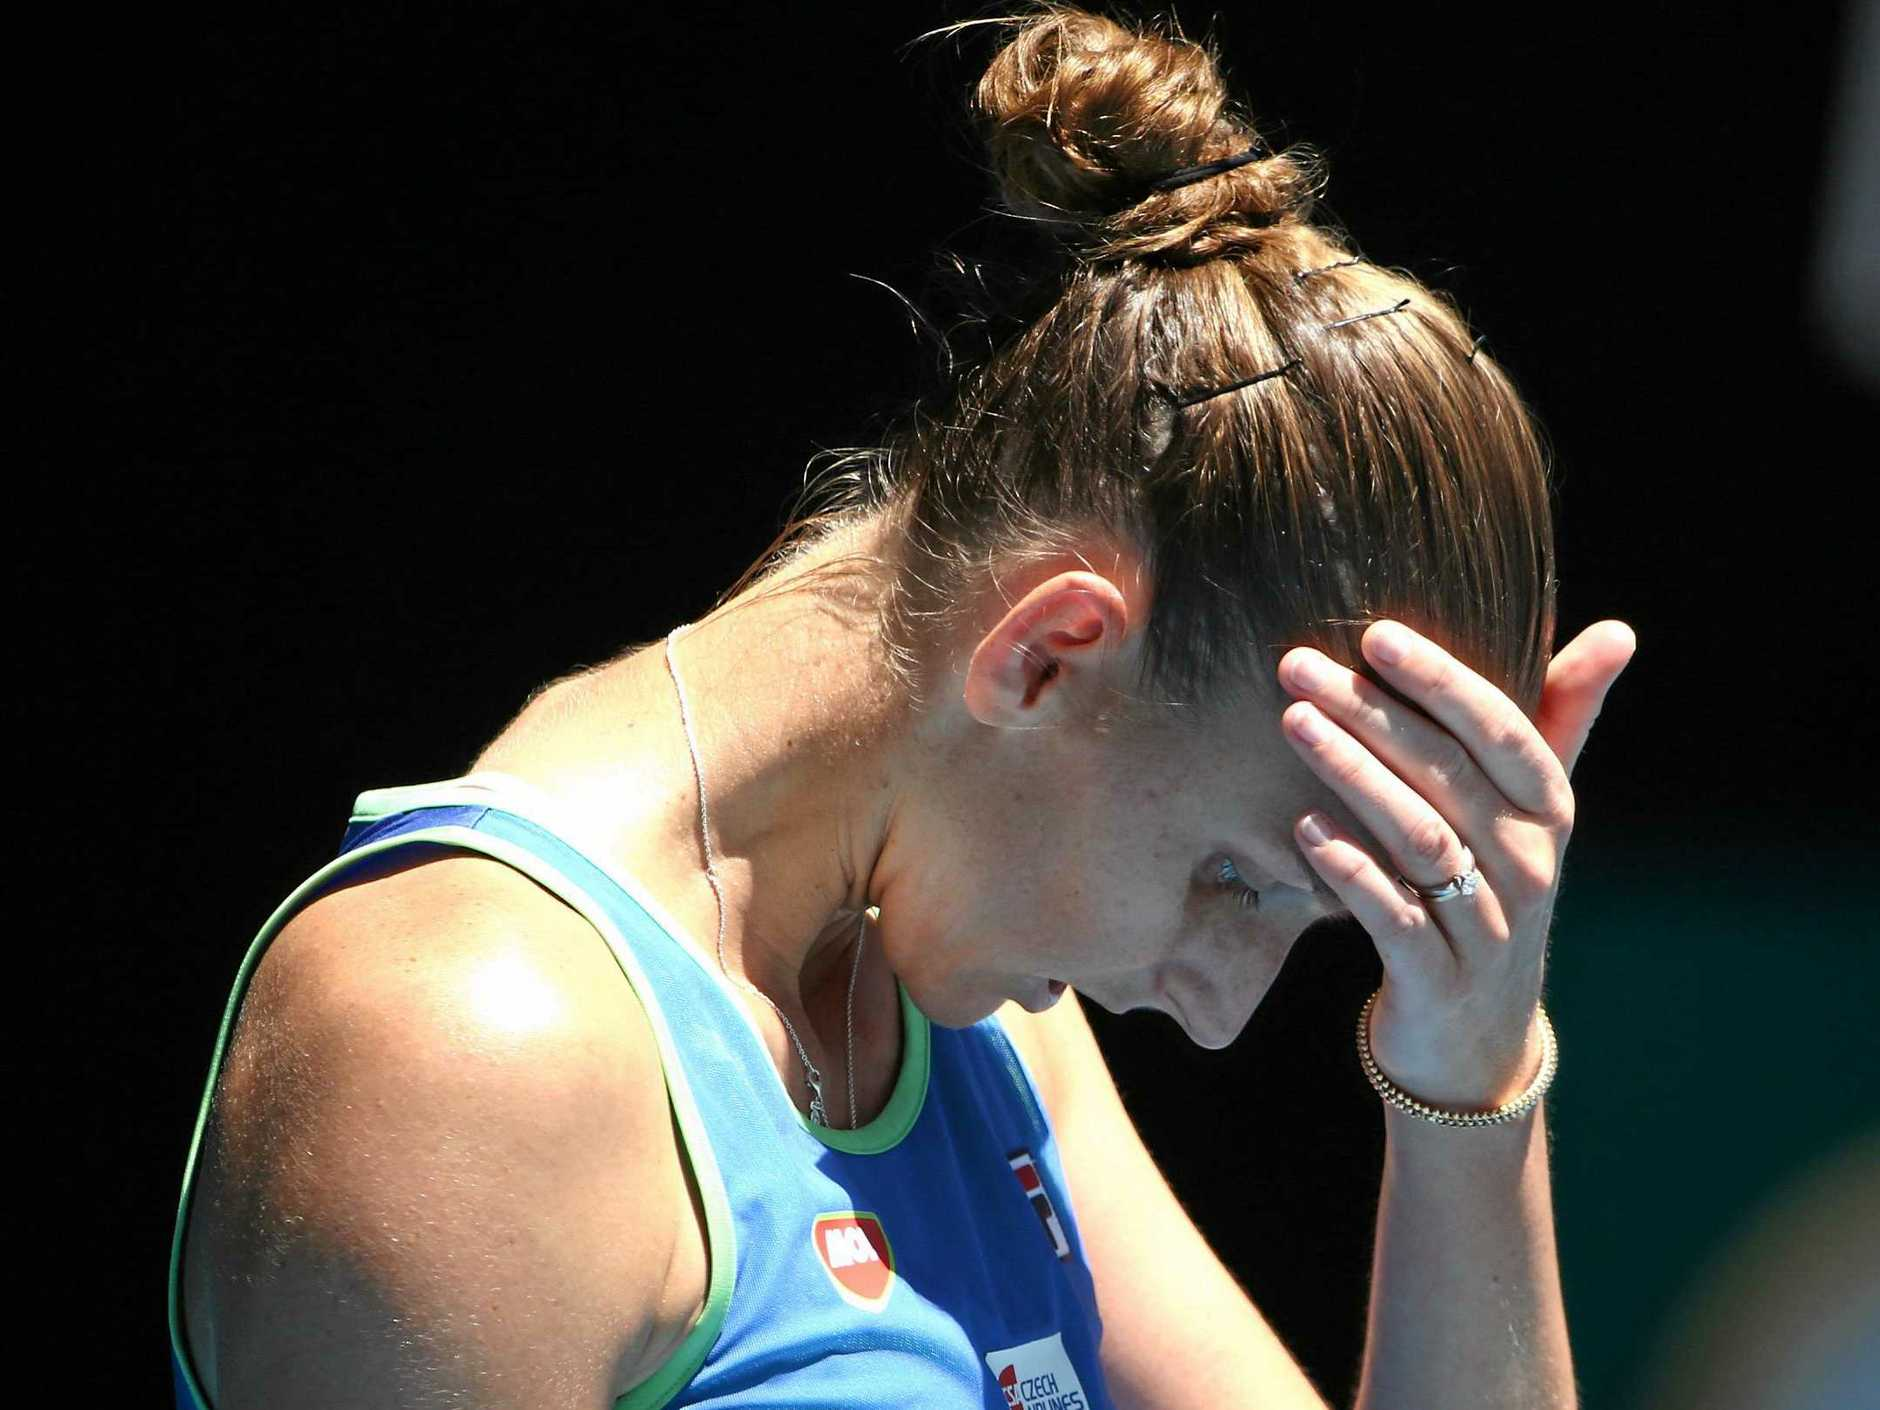 The Czech Republic's Karolina Pliskova reacts during her third-round match against Anastasia Pavlyuchenkova at the Australian Open on Saturday. Picture: Rob Prezioso/AAP